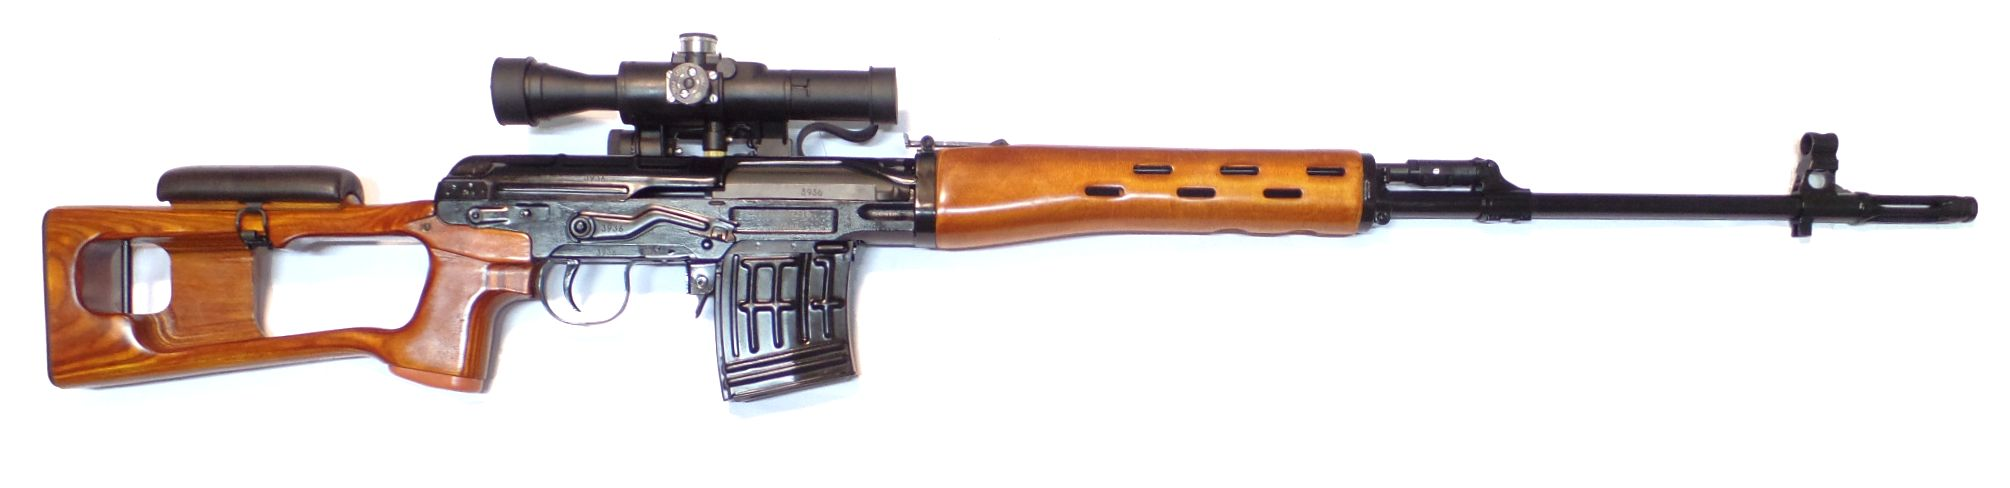 DRAGUNOV SVD calibre 7.62x54R REPETITION MANUELLE